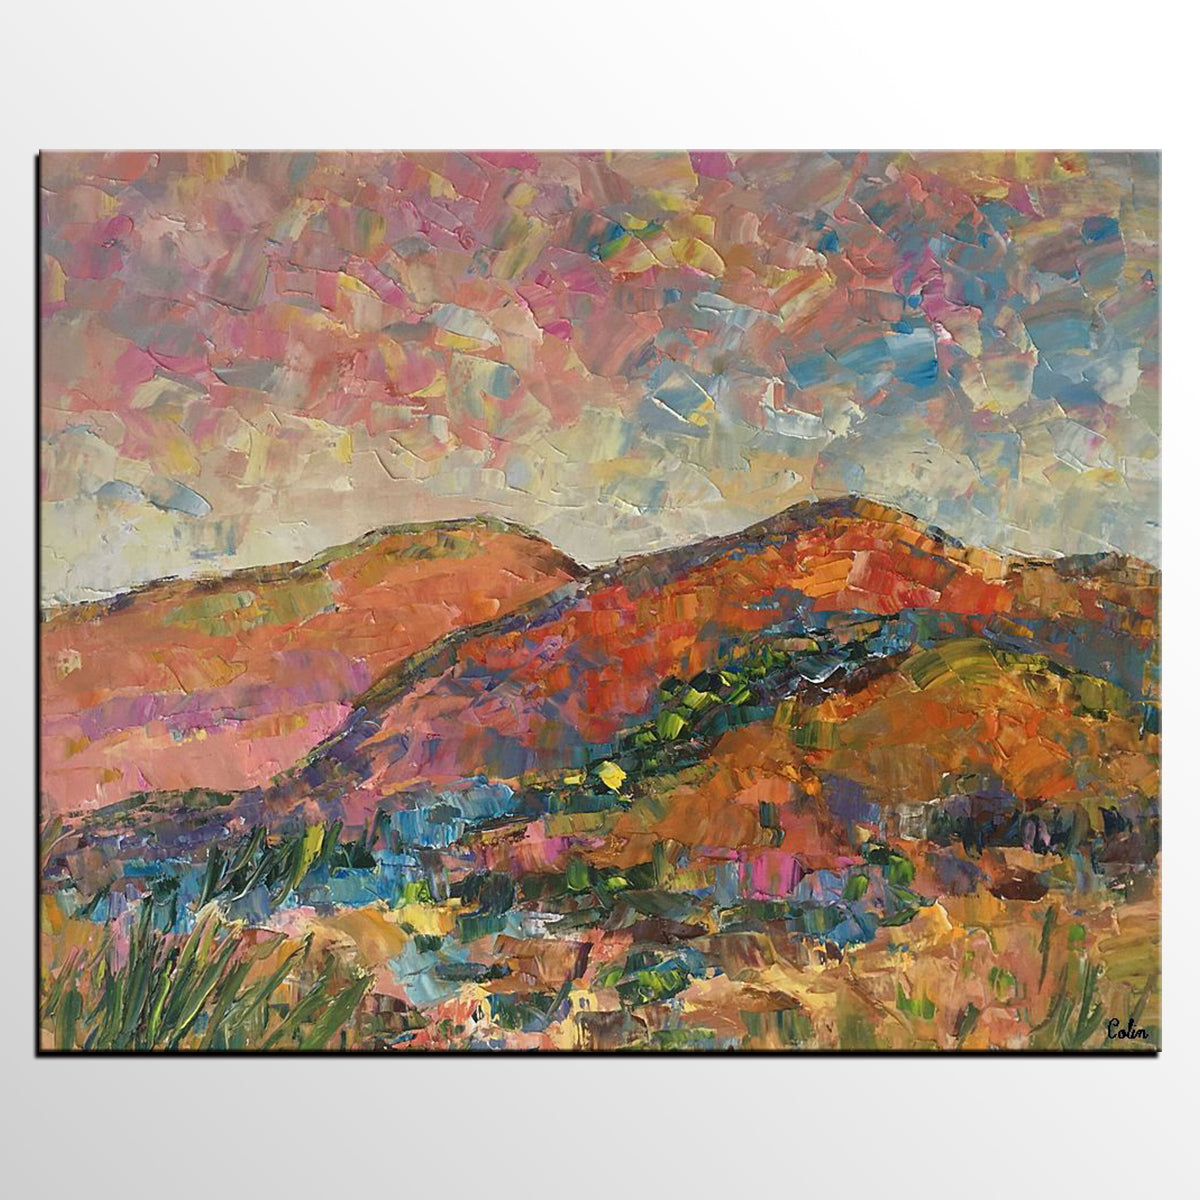 Abstract Landscape Oil Painting, Original Artwork, Autumn Mountain Painting, Canvas Painting